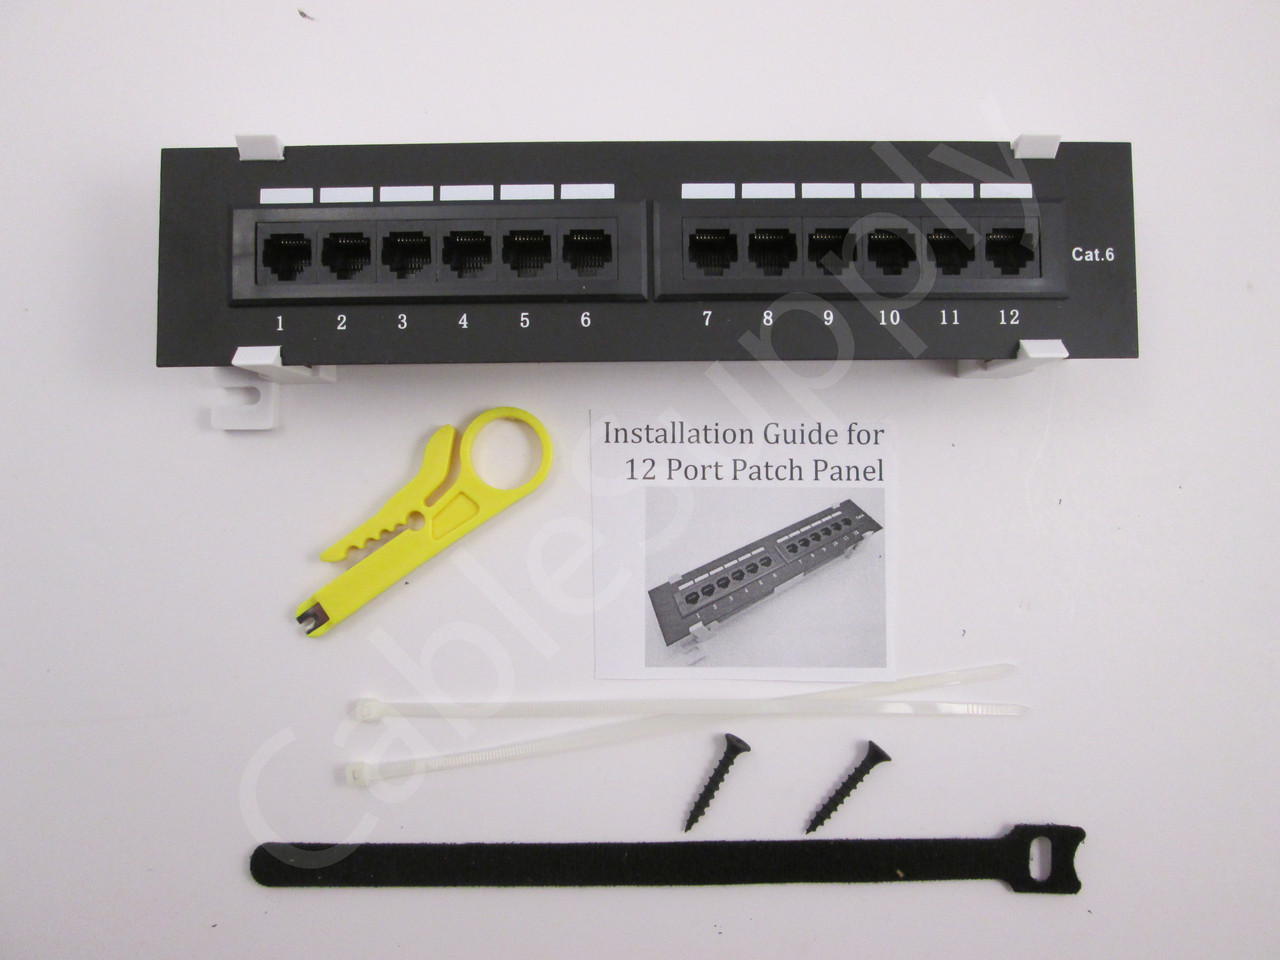 cat6 cat5e vertical wall mount mini patch panel 12 port cablesupply cat 6 connection diagram cat6 patch panel wiring diagram [ 1280 x 960 Pixel ]